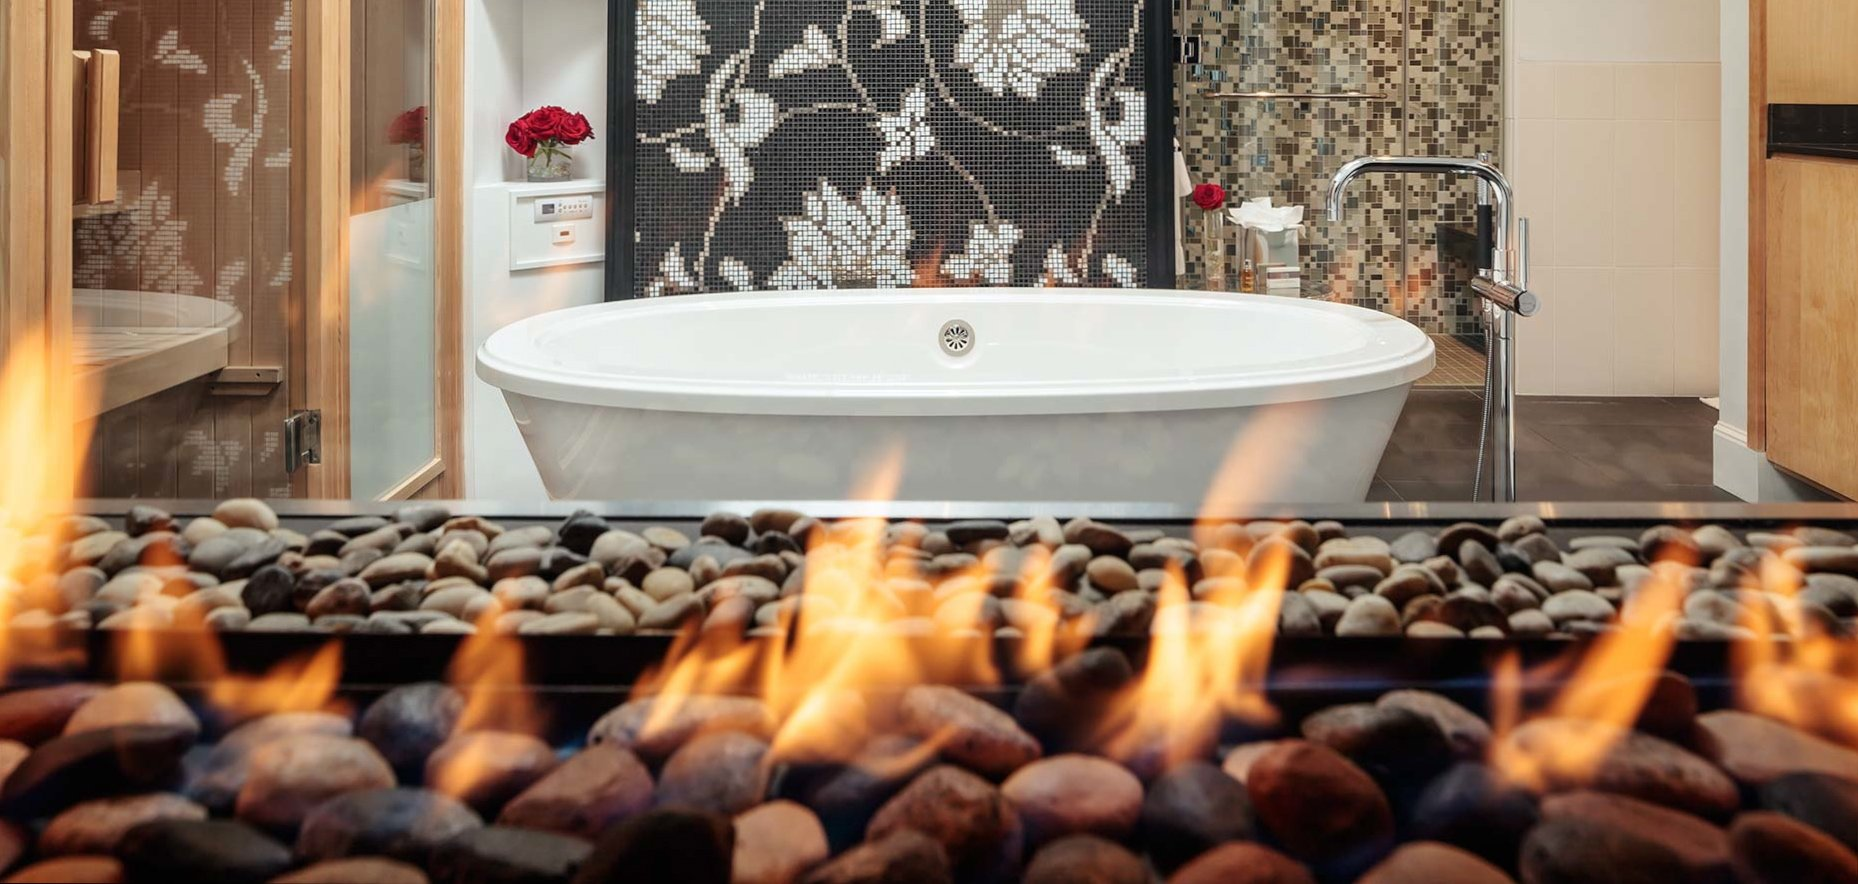 The ultimate of luxury; Royal Dutch Suite with 800 square feet of living space, 2 fireplaces, deck, 3 televisions, rainshower, steamshower, airbath and sauna. The best in Maine